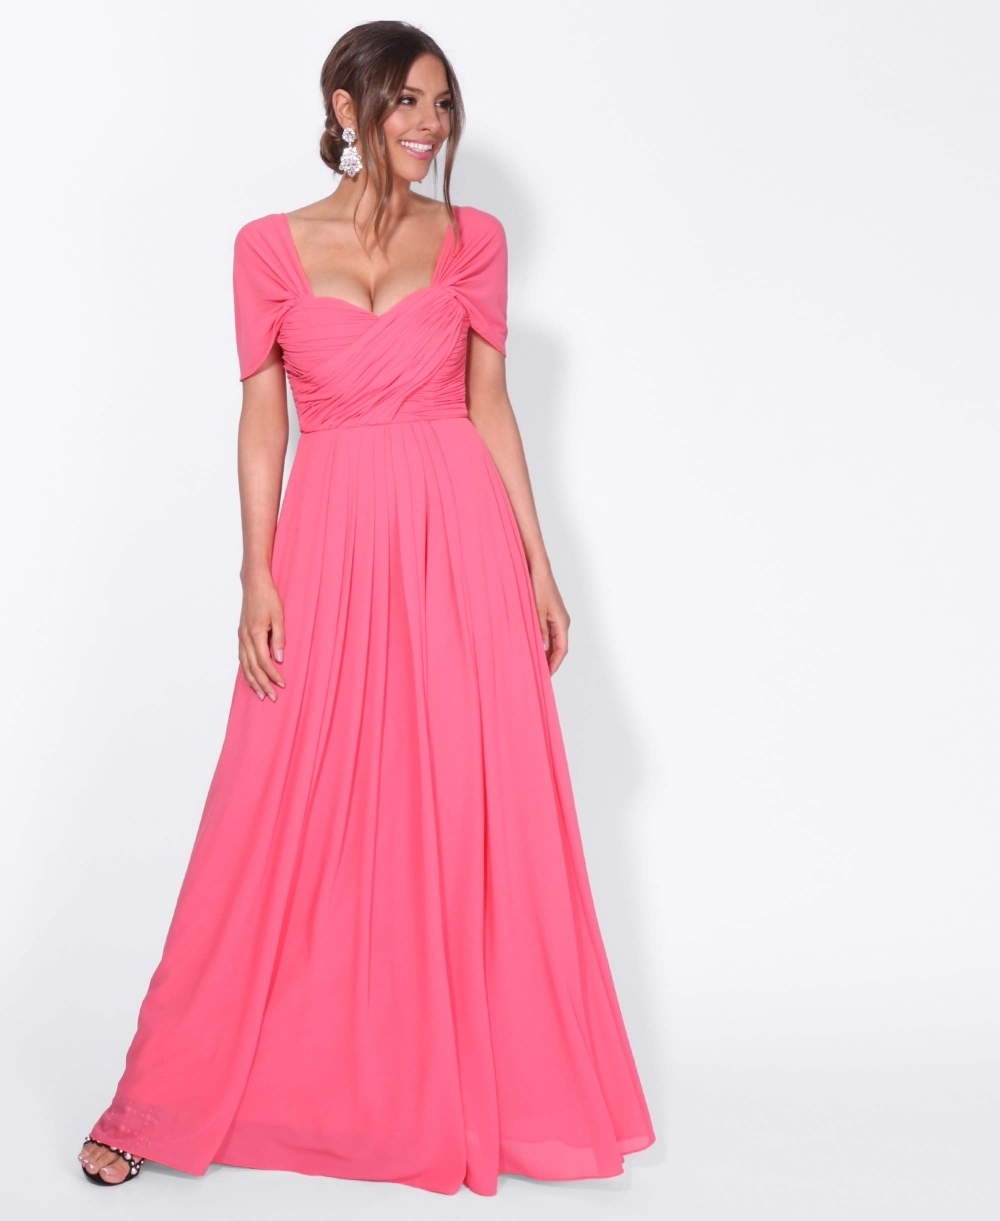 Prom Dress Sale for 20.00